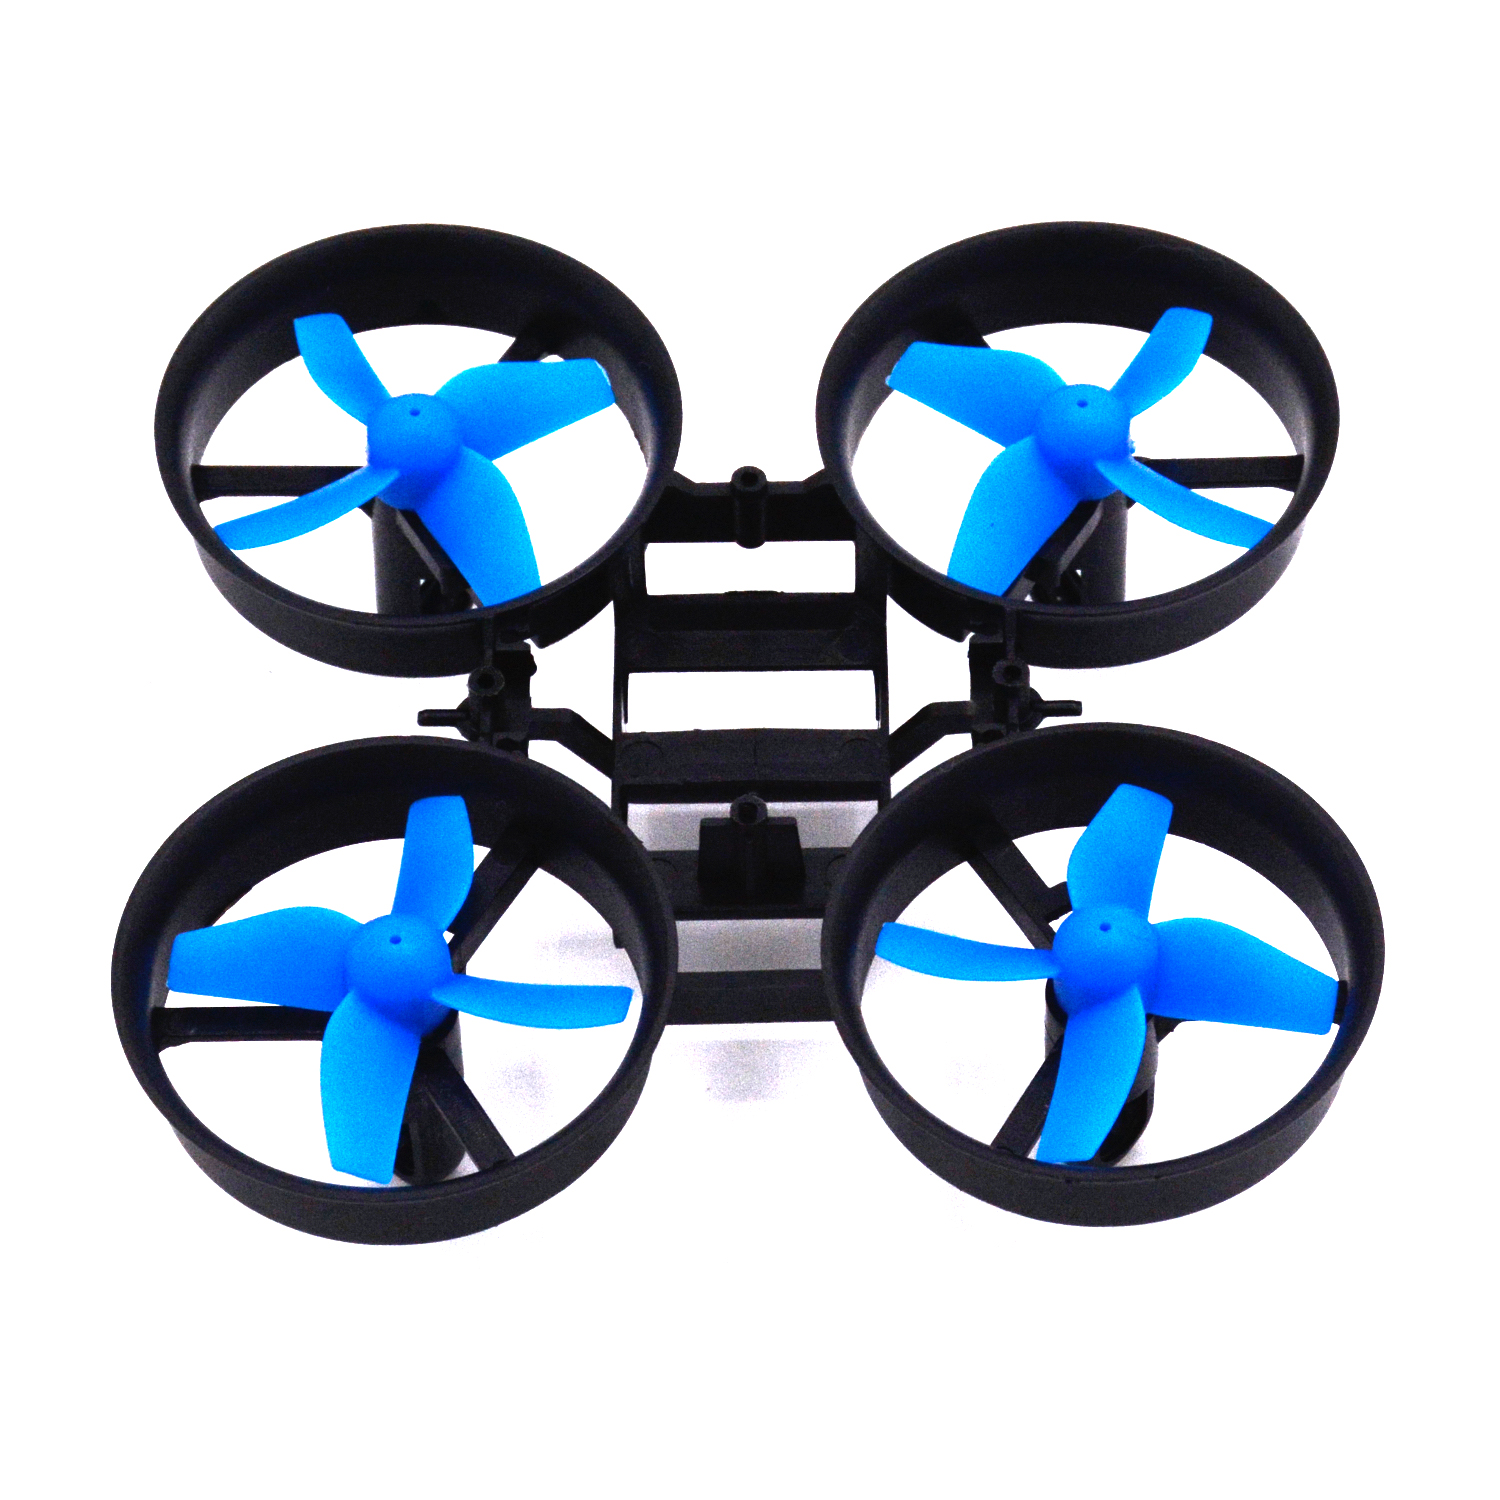 LHI RC Quadcopter Frame and 4pcs Propellers Blue for Blade Inductrix Tiny Whoop Christmas gifts